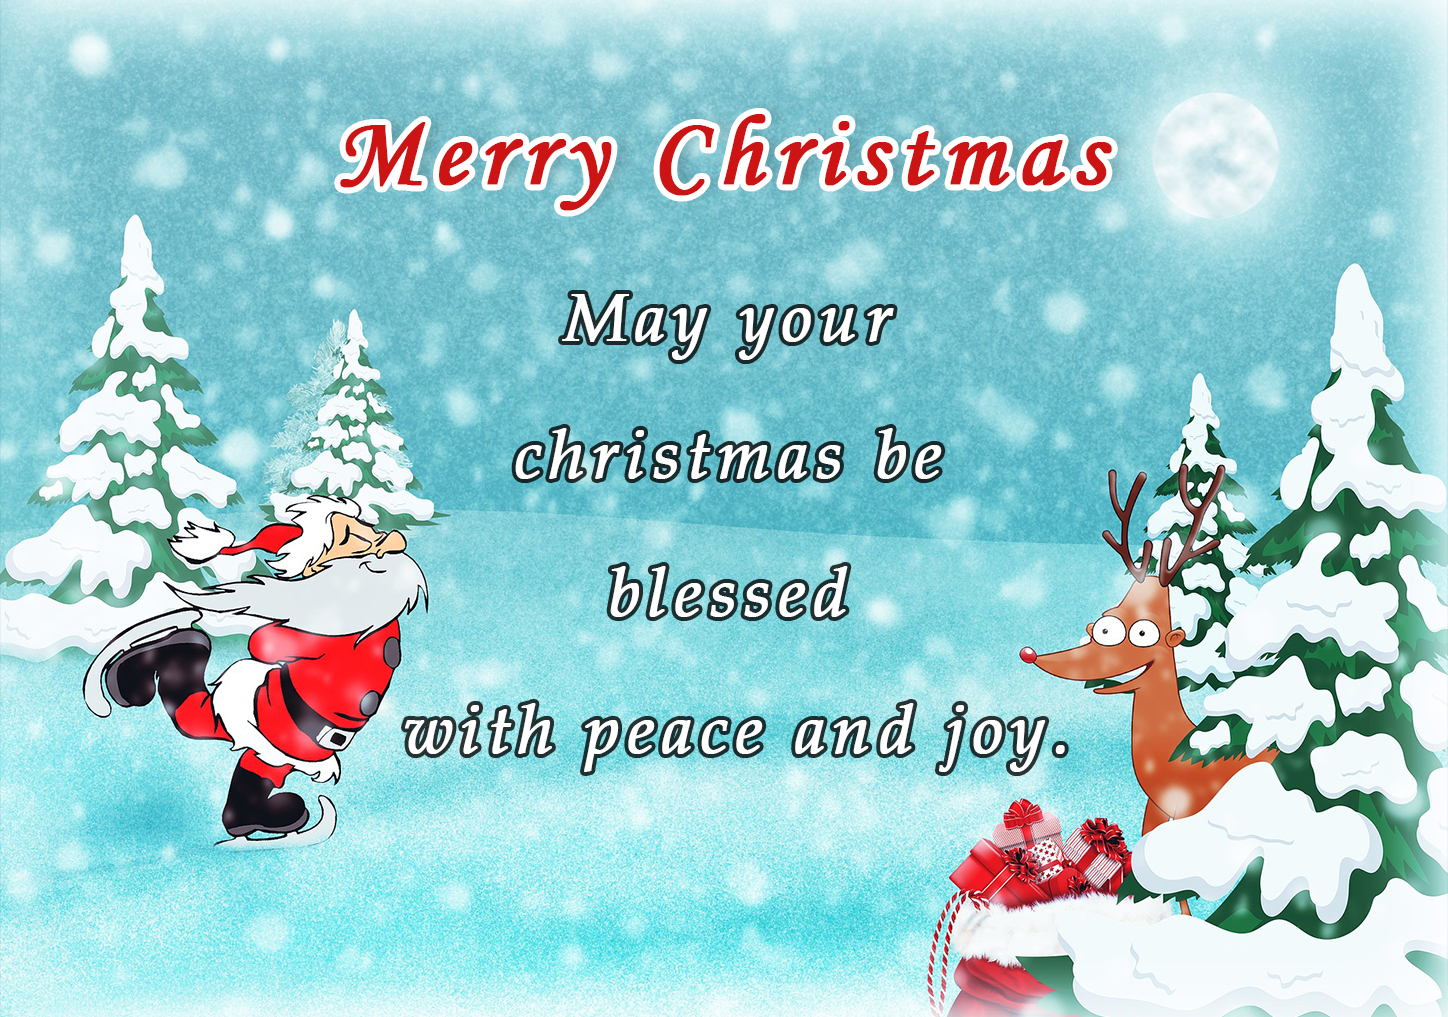 Christmas Wishes Wallpaper Christmas Wishes Sms Christmas Merry Christmas Greetings 2019 1448x1017 Wallpaper Teahub Io